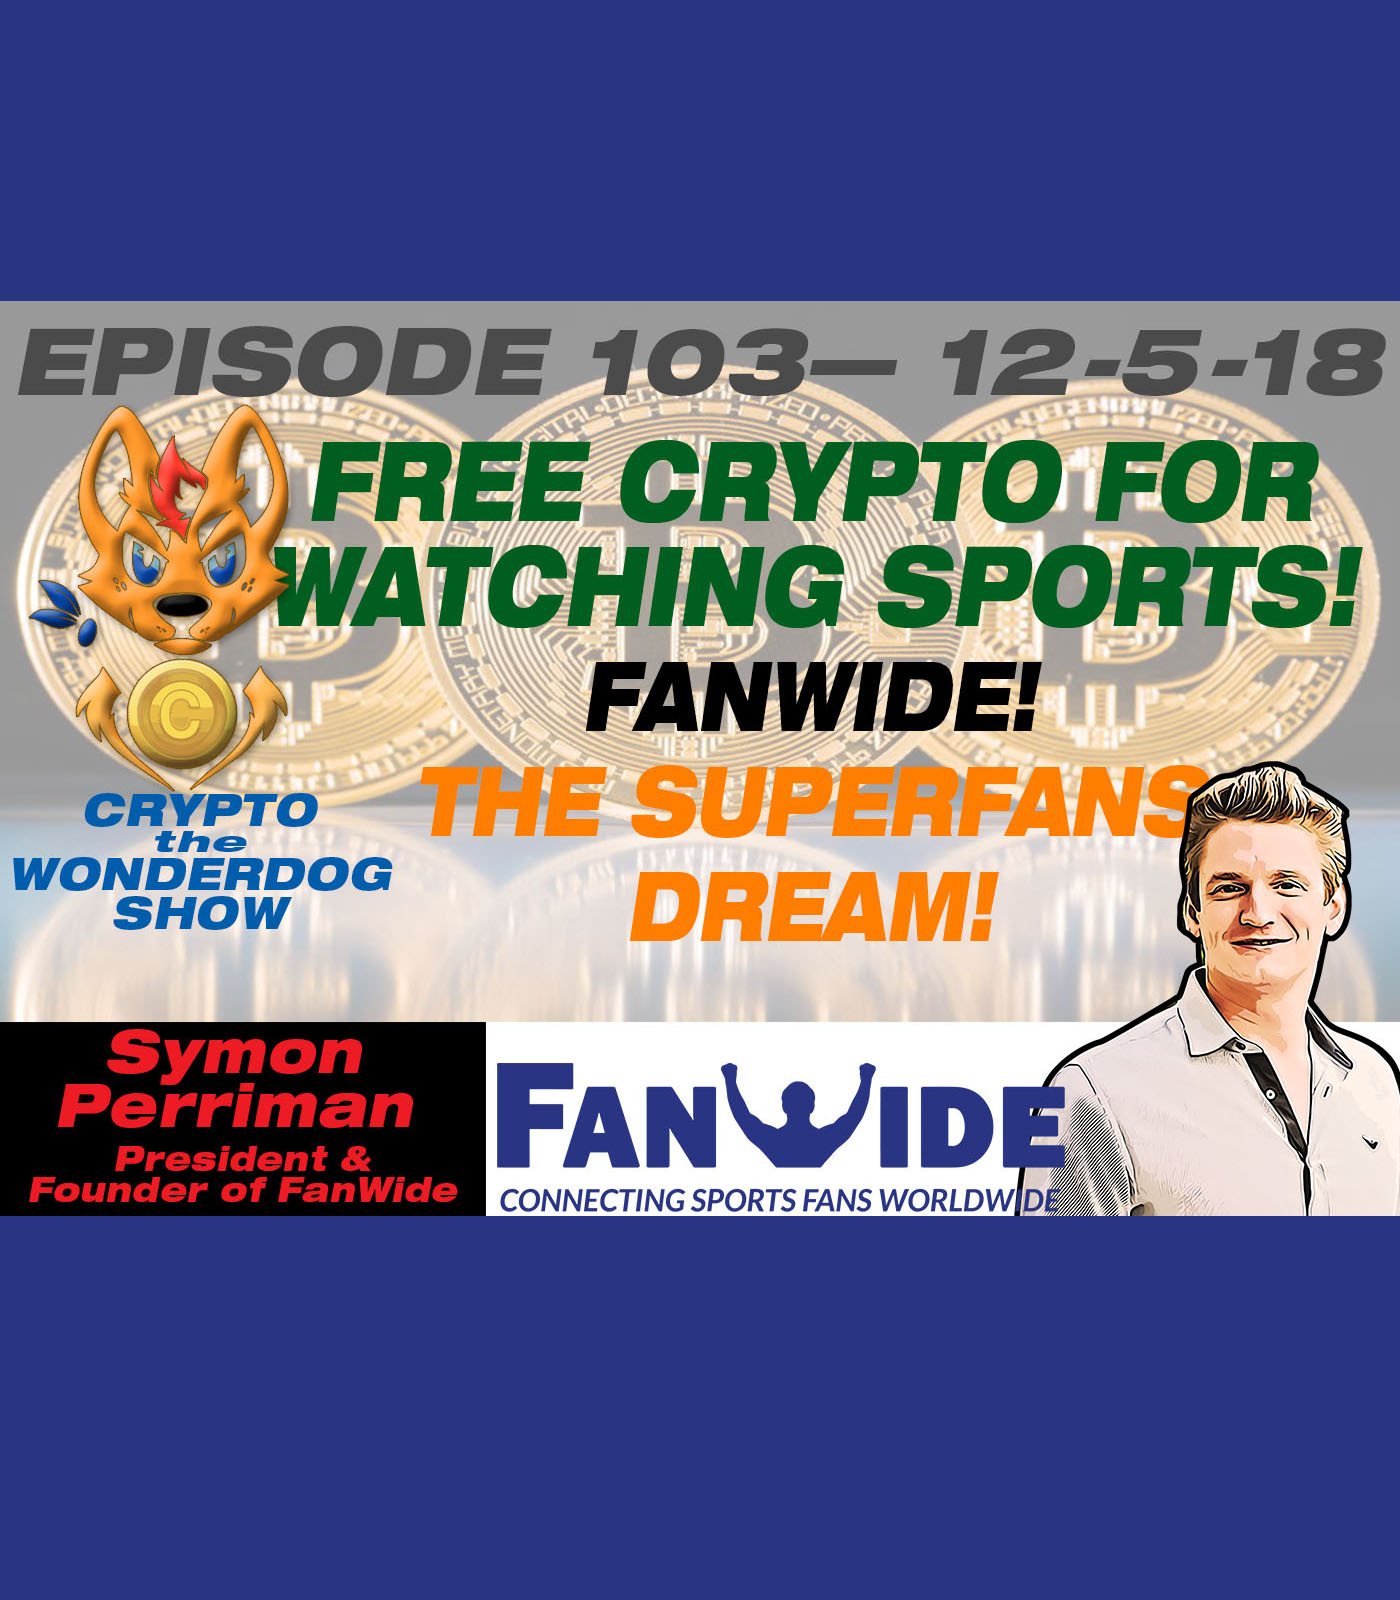 Free Crypto, Tokens, Rewards for Watching Sports (Sports Fans Dream) [ FanWide.com Tokens for Sports Fans] 2018